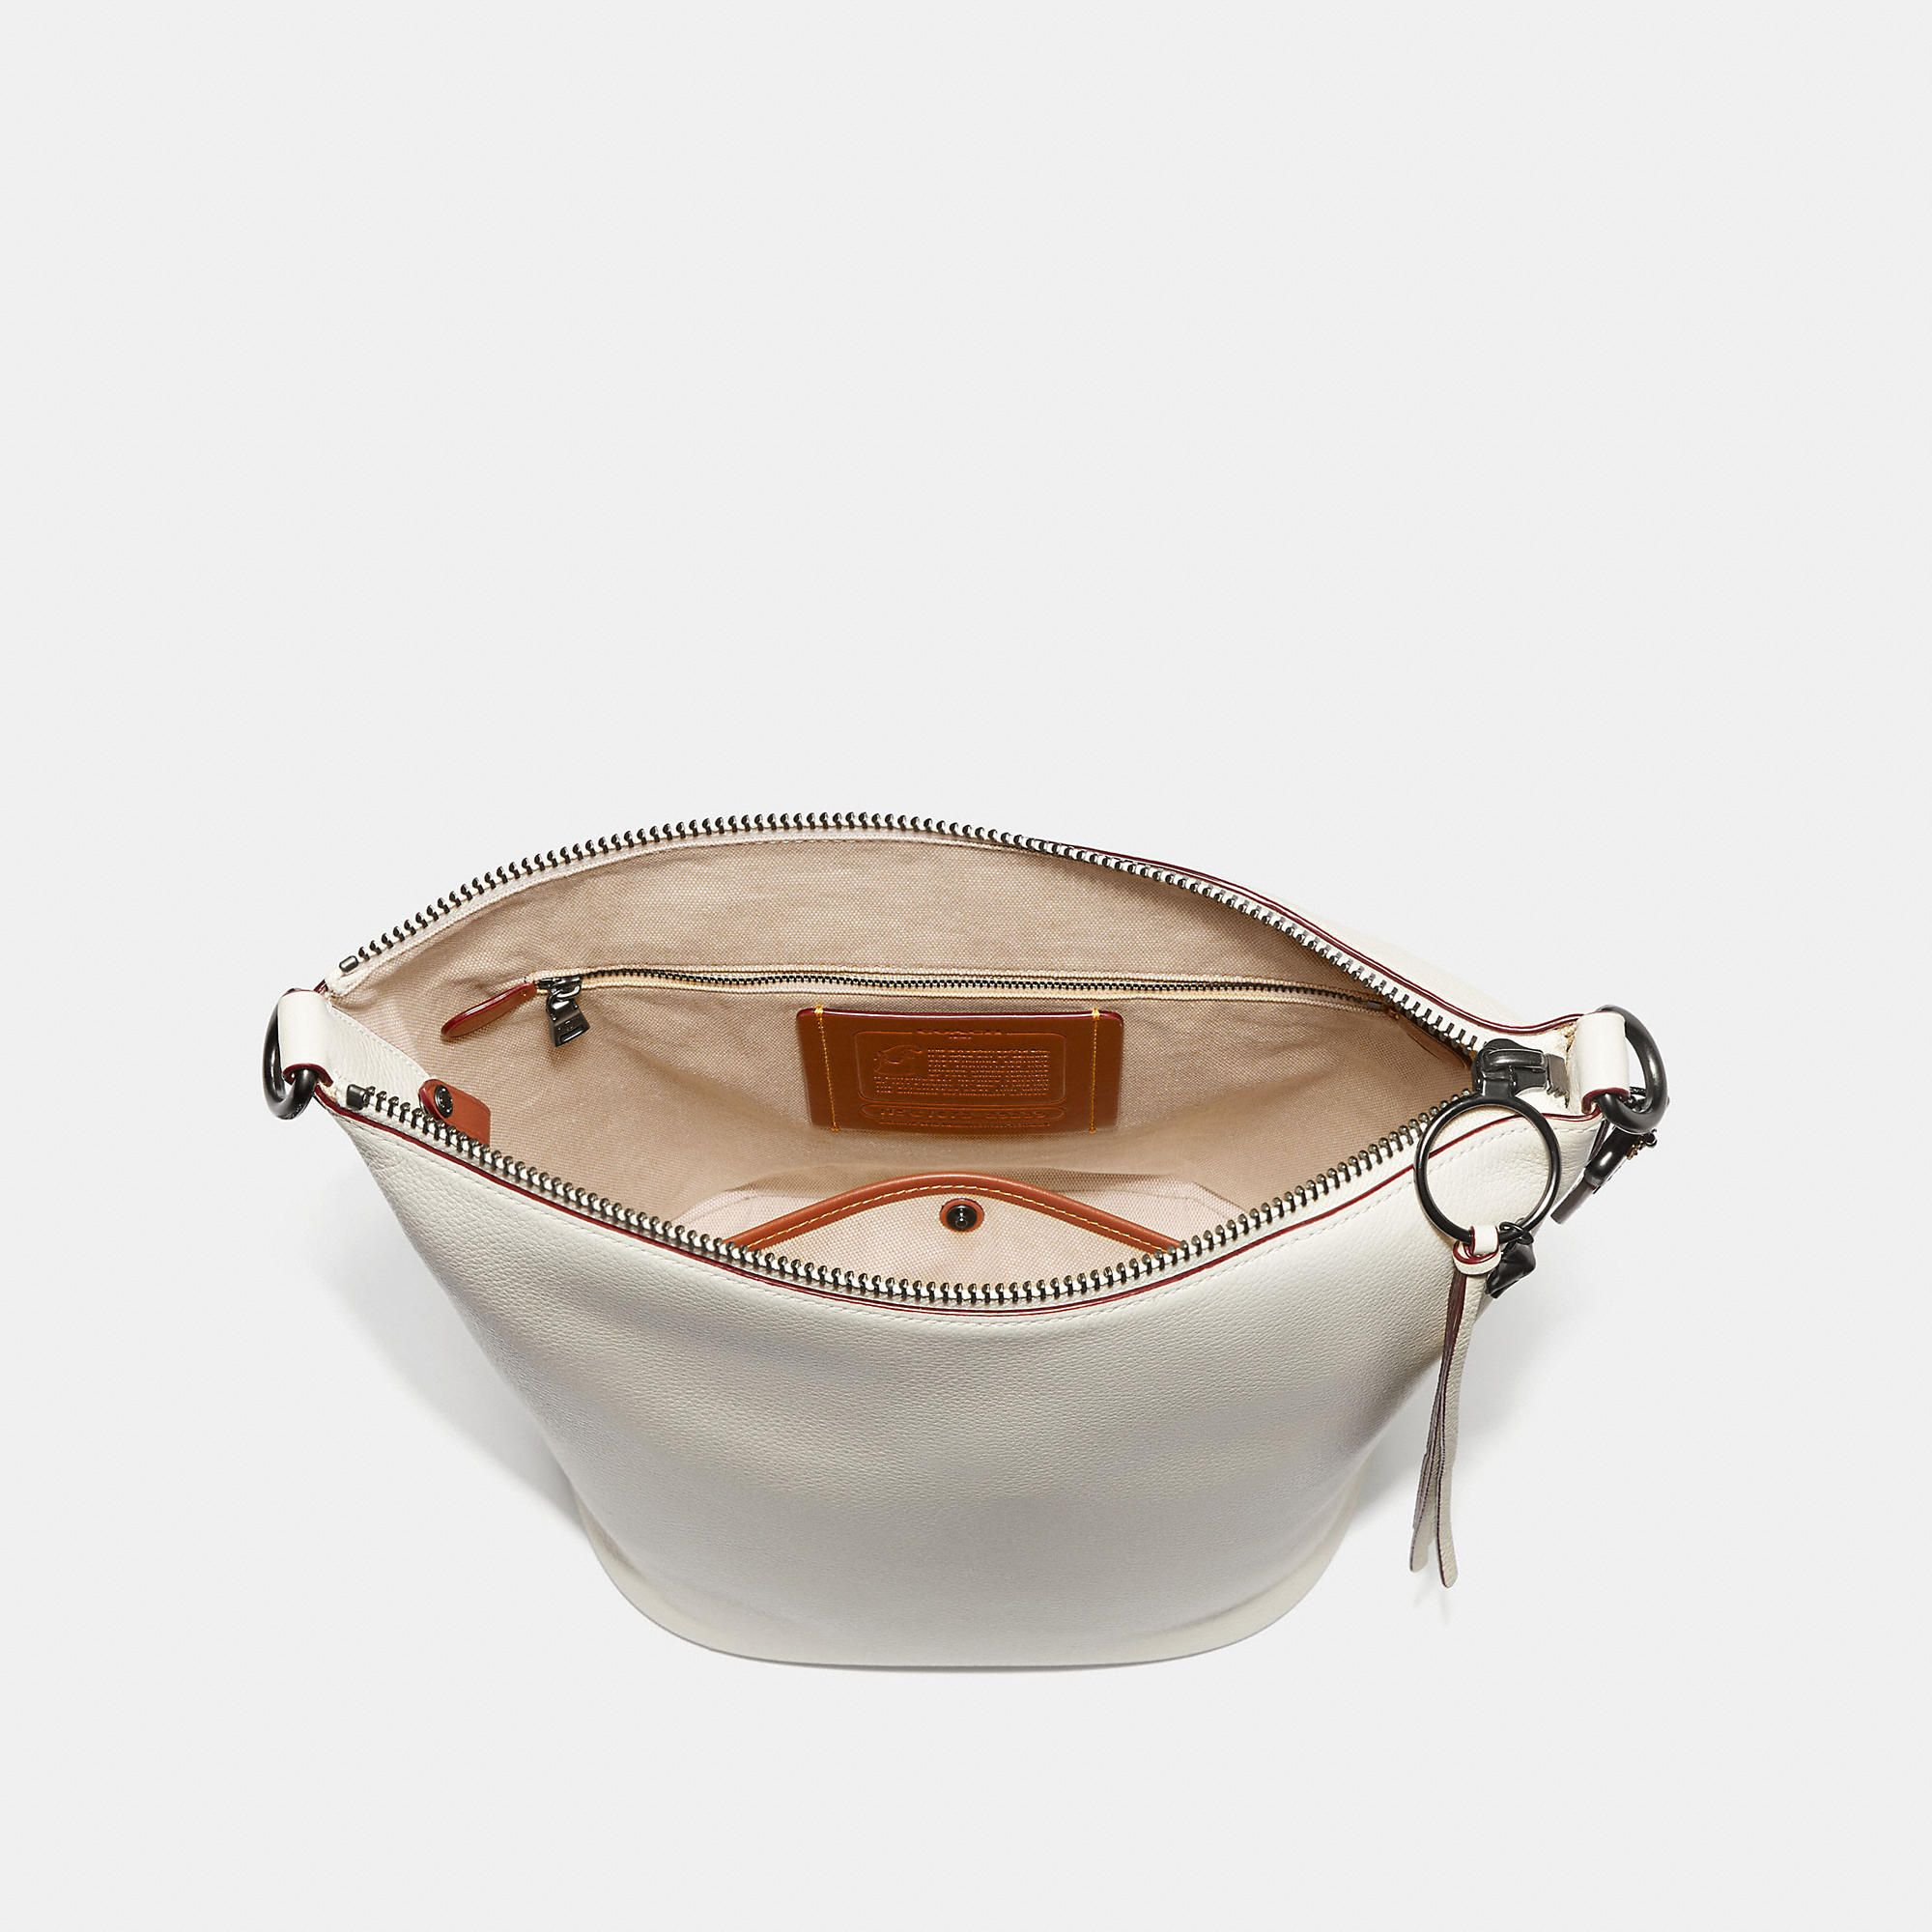 dc36abe2a2610 COACH Duffle In Natural Pebble Leather With Border Rivets - Women s